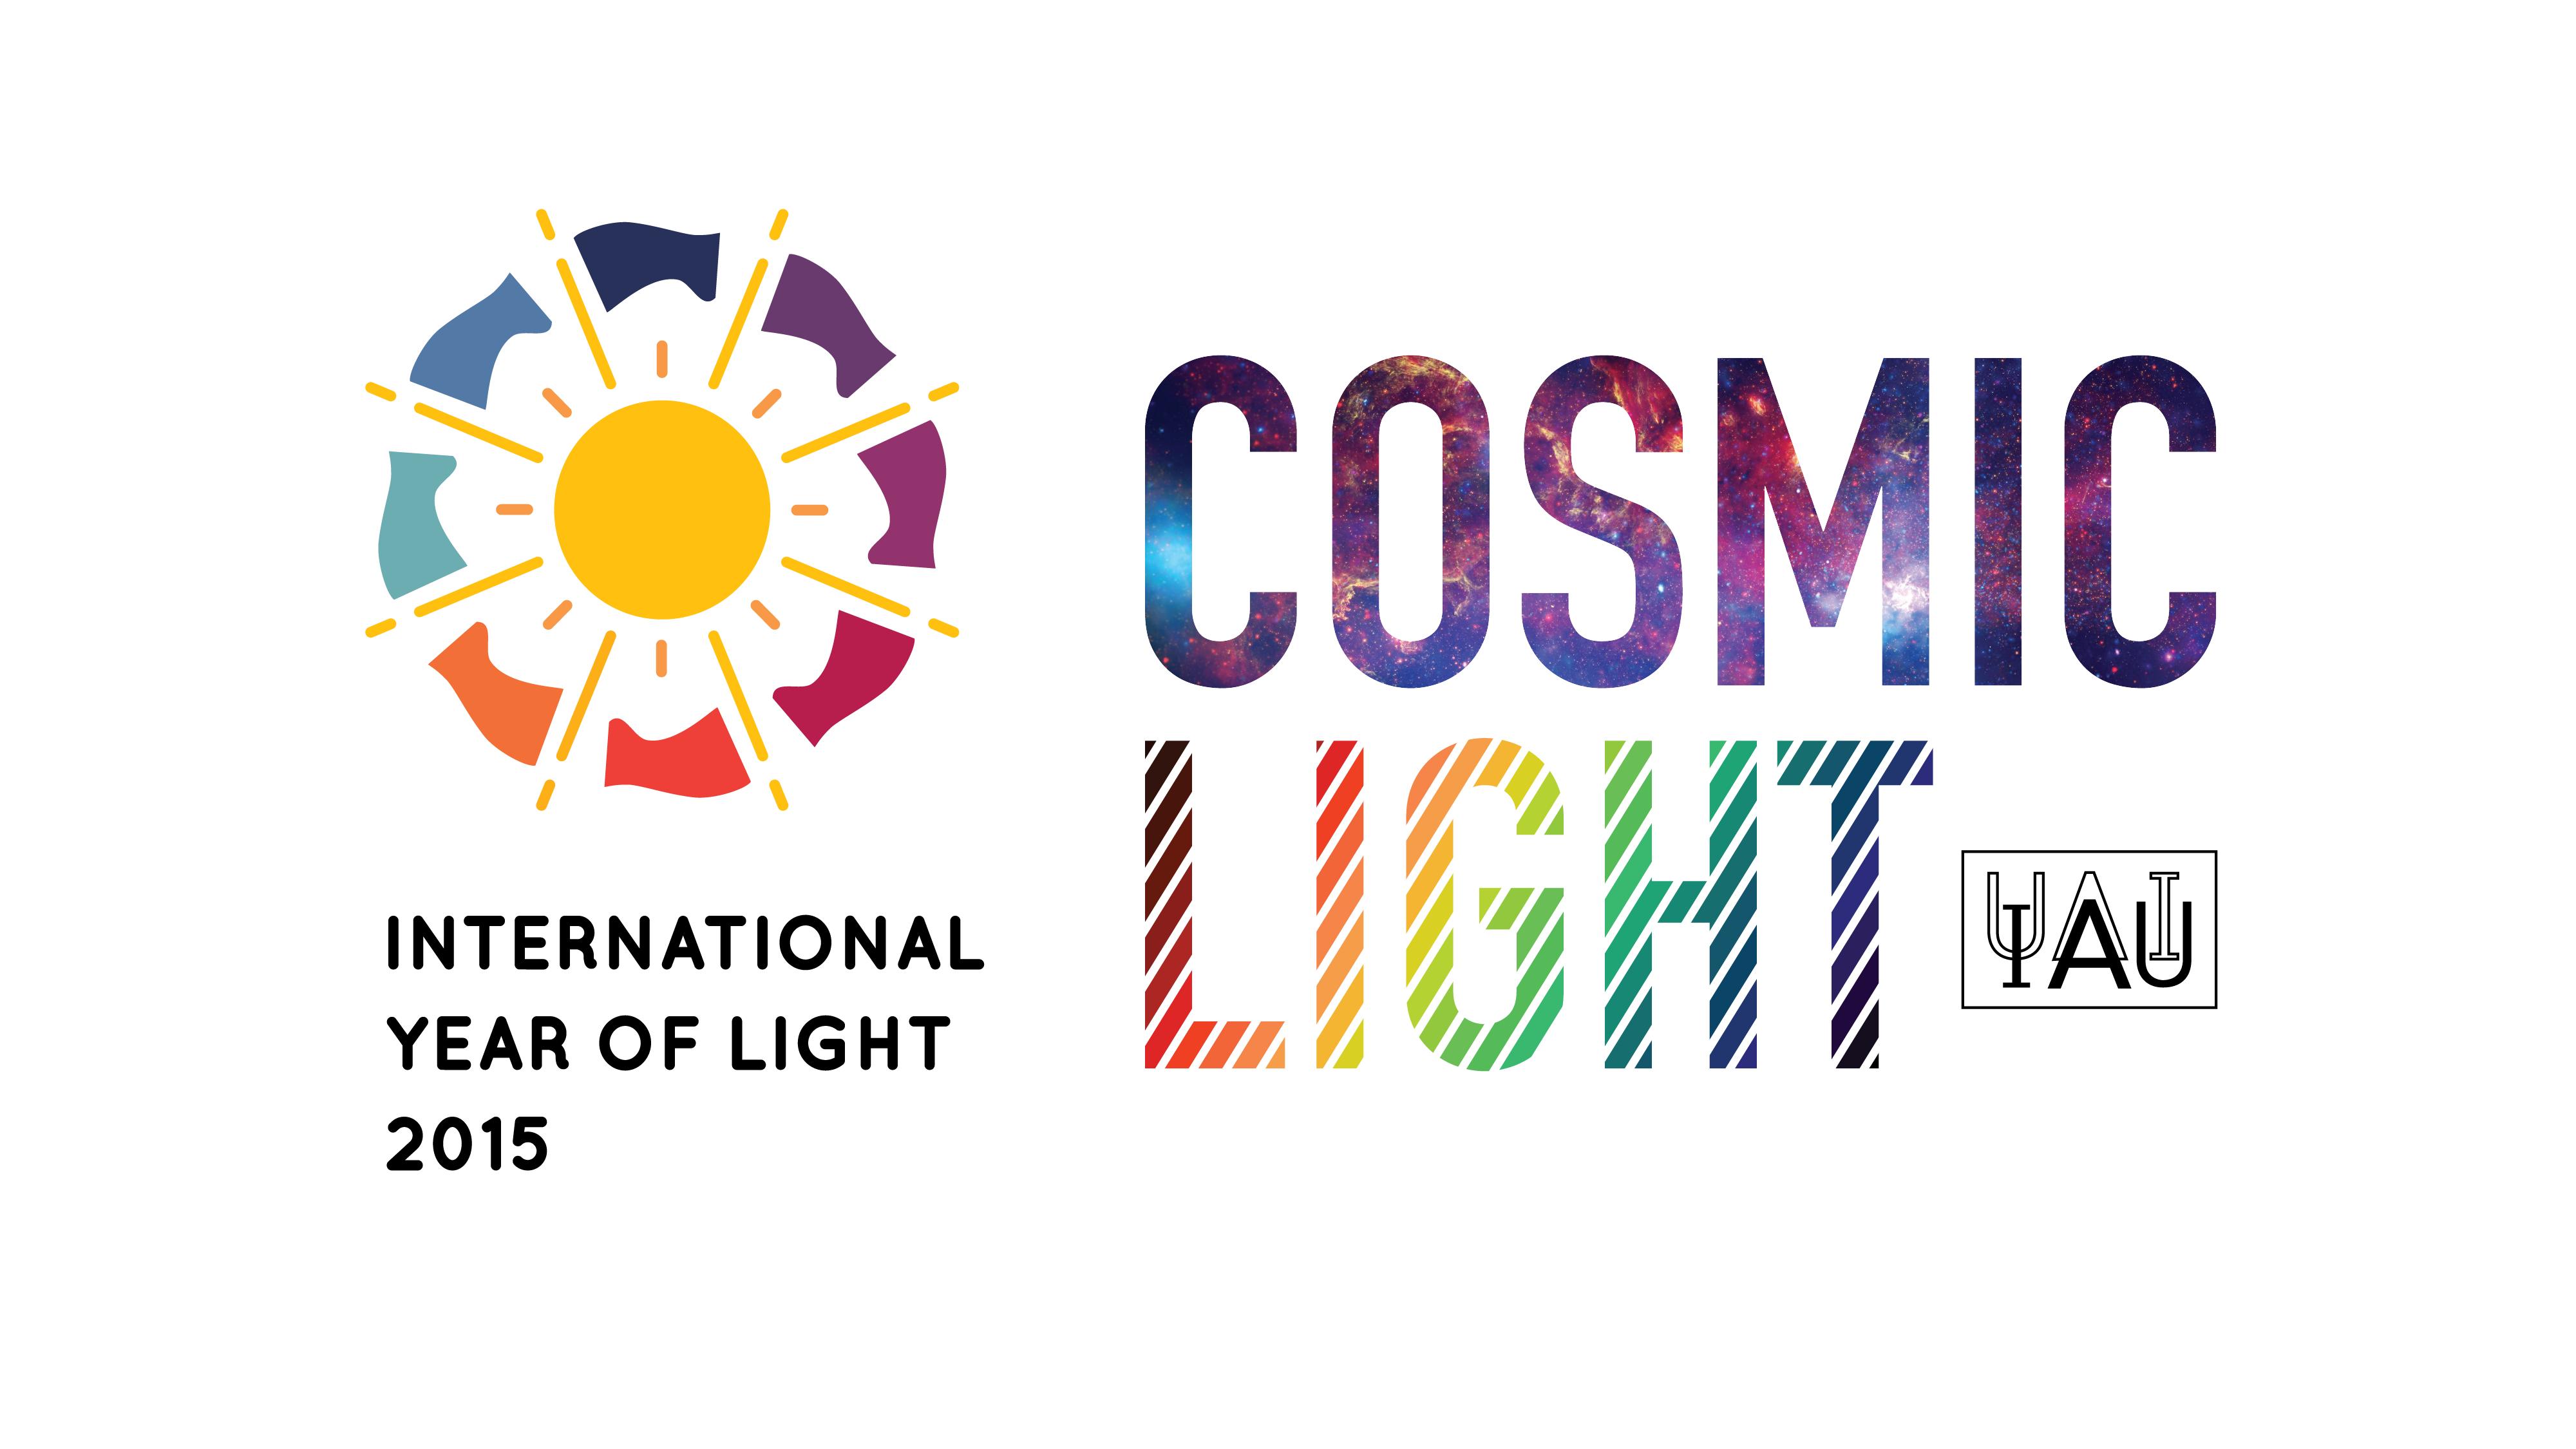 cosmiclight_color_whitebg